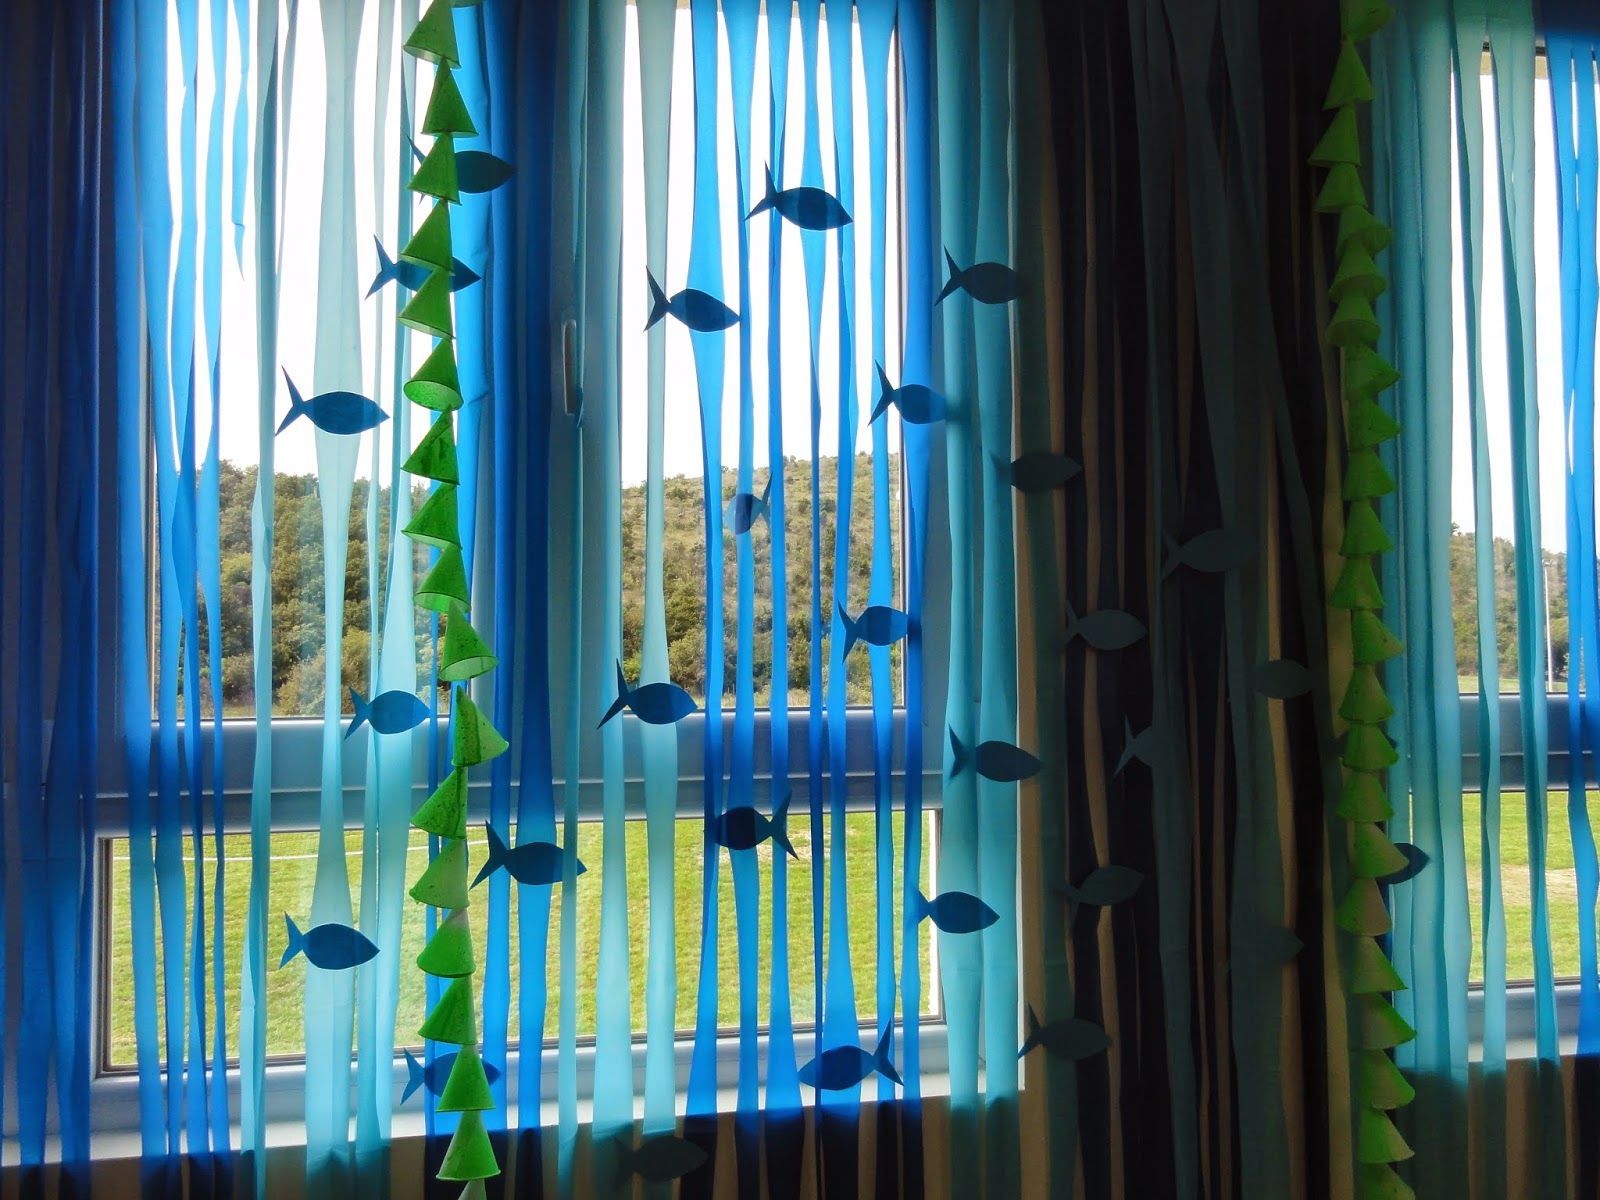 Ocean Theme Decorating Ideas This Post Is Full Of Ideas For The Ocean Classroom Theme